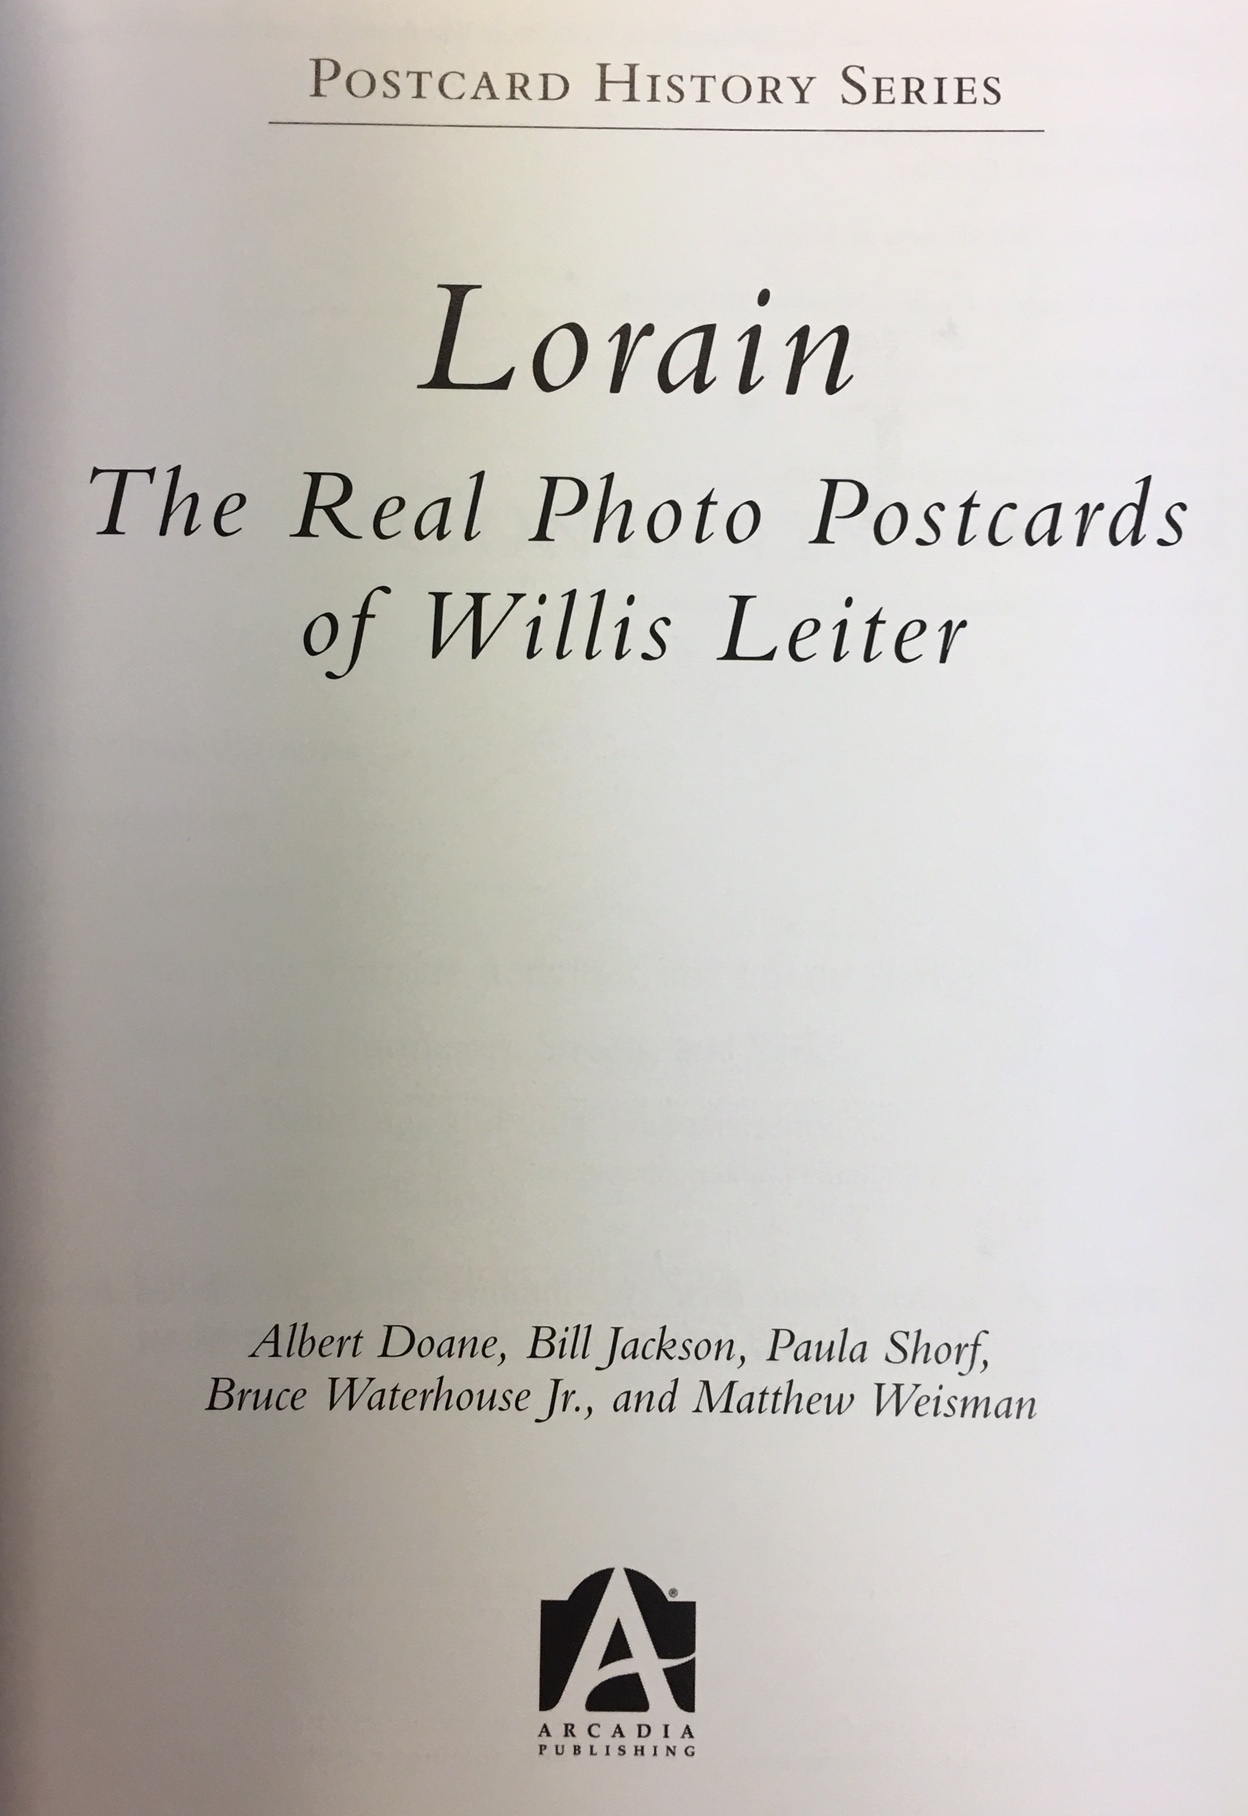 Image for Lorain: The Real Photo Postcards of Willis Leiter (Postcard History)